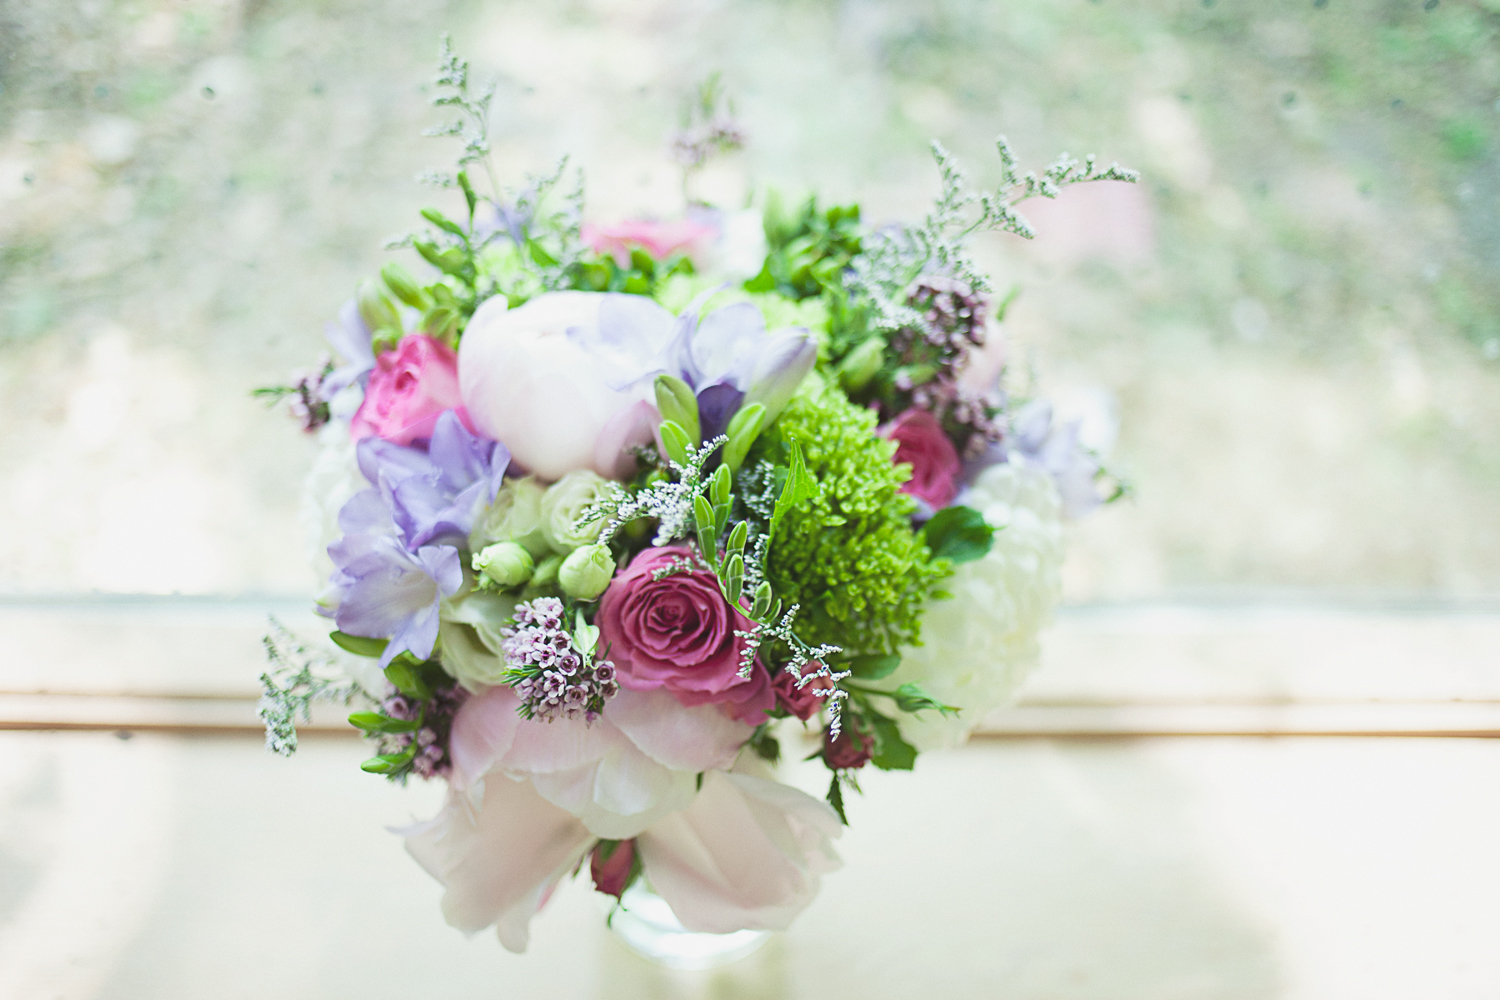 Bridal bouquet in front of window